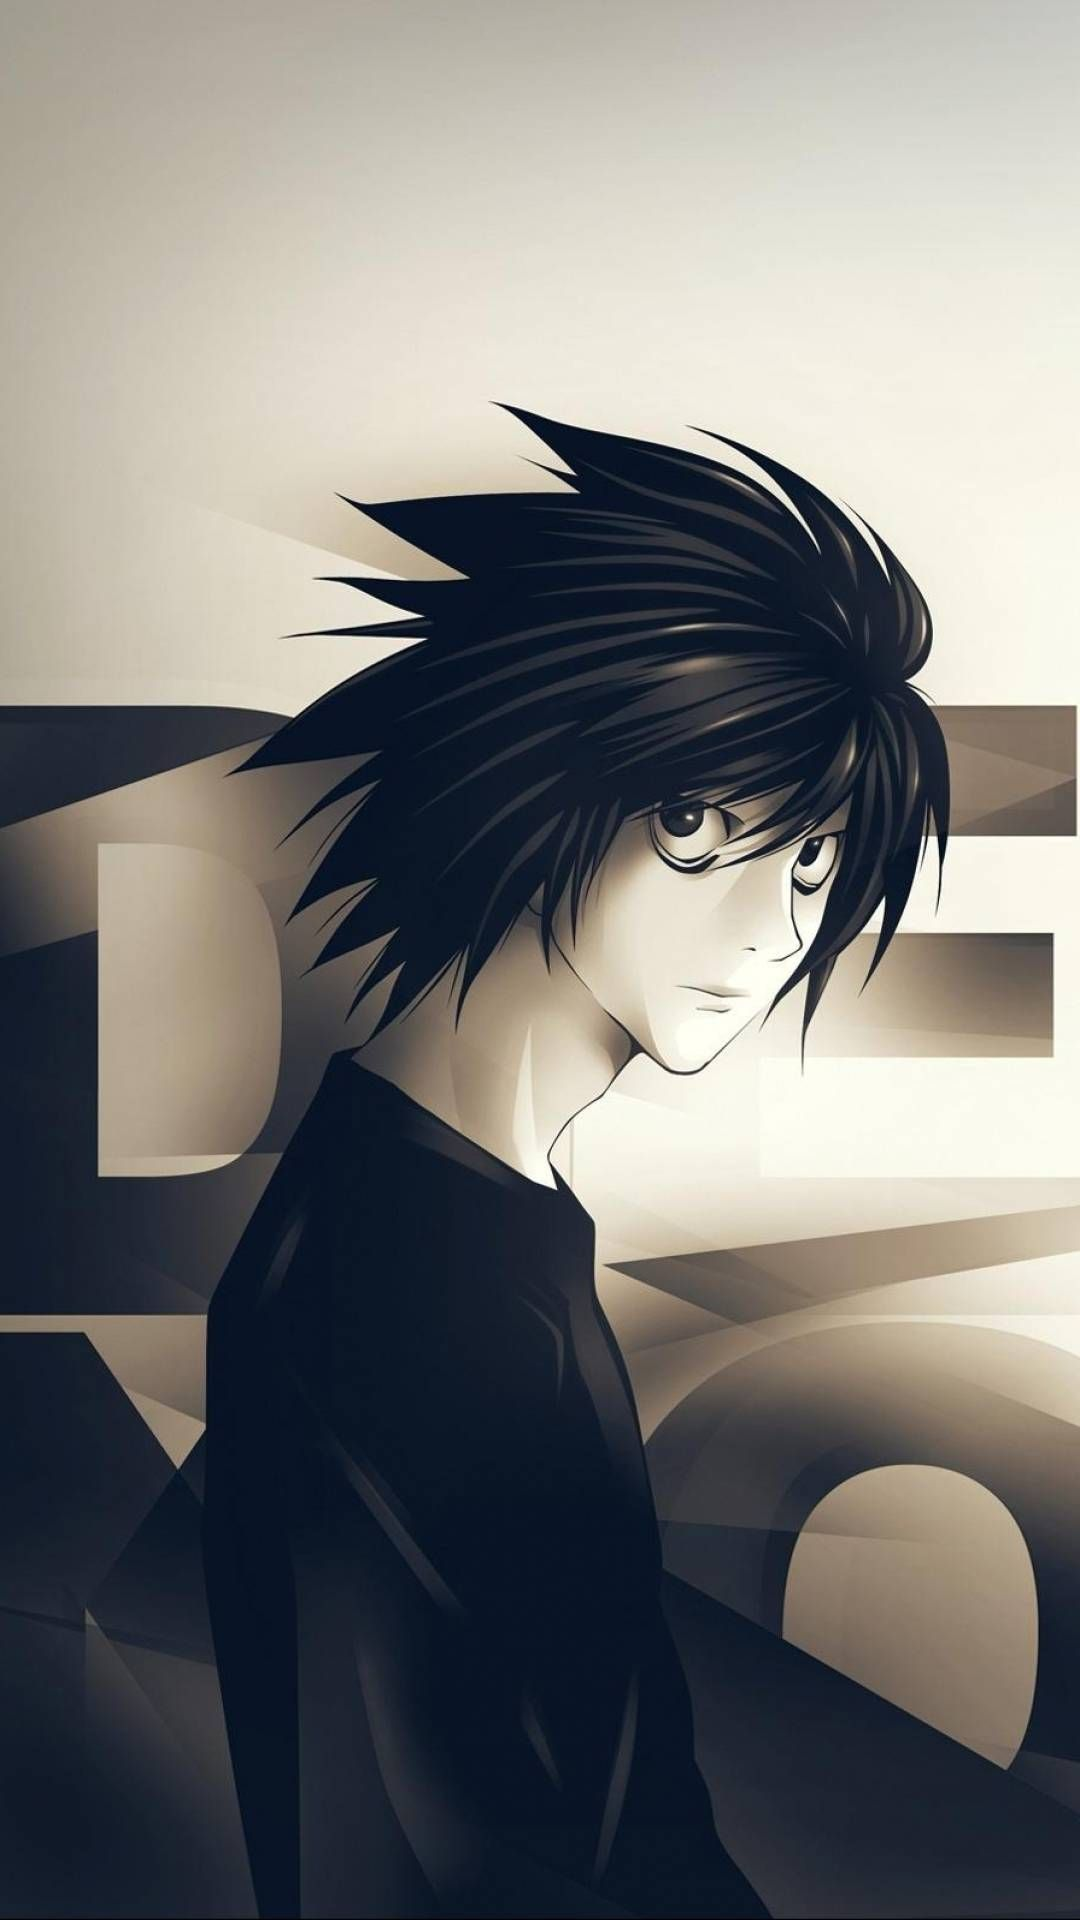 Http Mobw Org 15765 Anime Wallpaper Death Note Html Anime